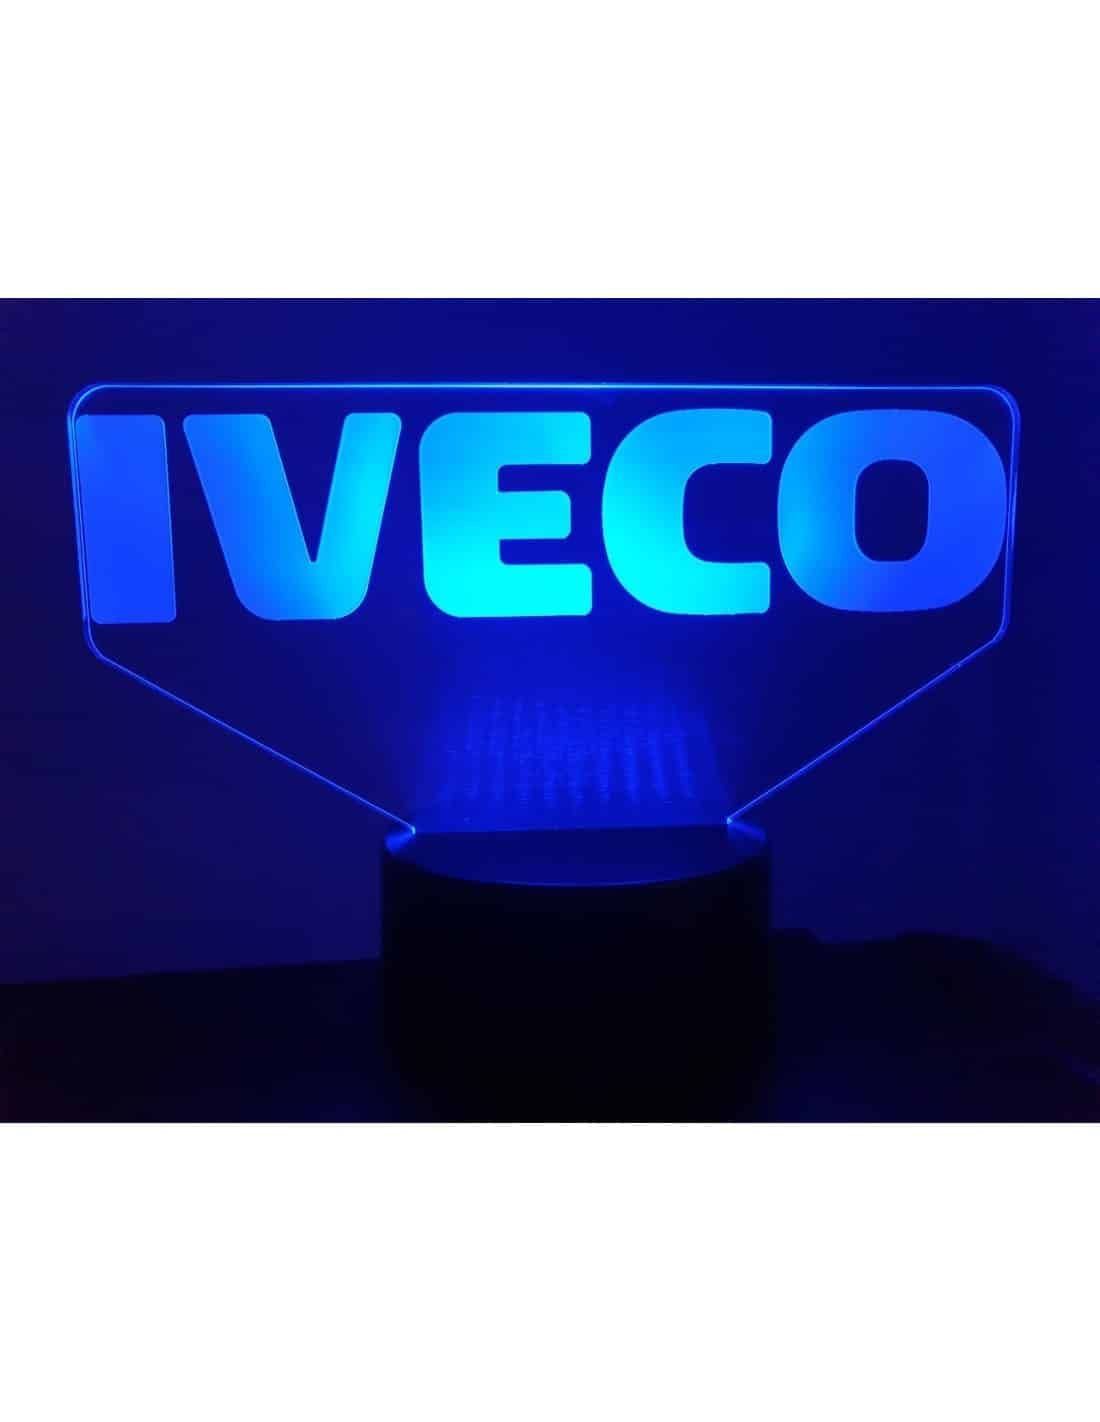 Logo Iveco 3D Illusion Led Lamp